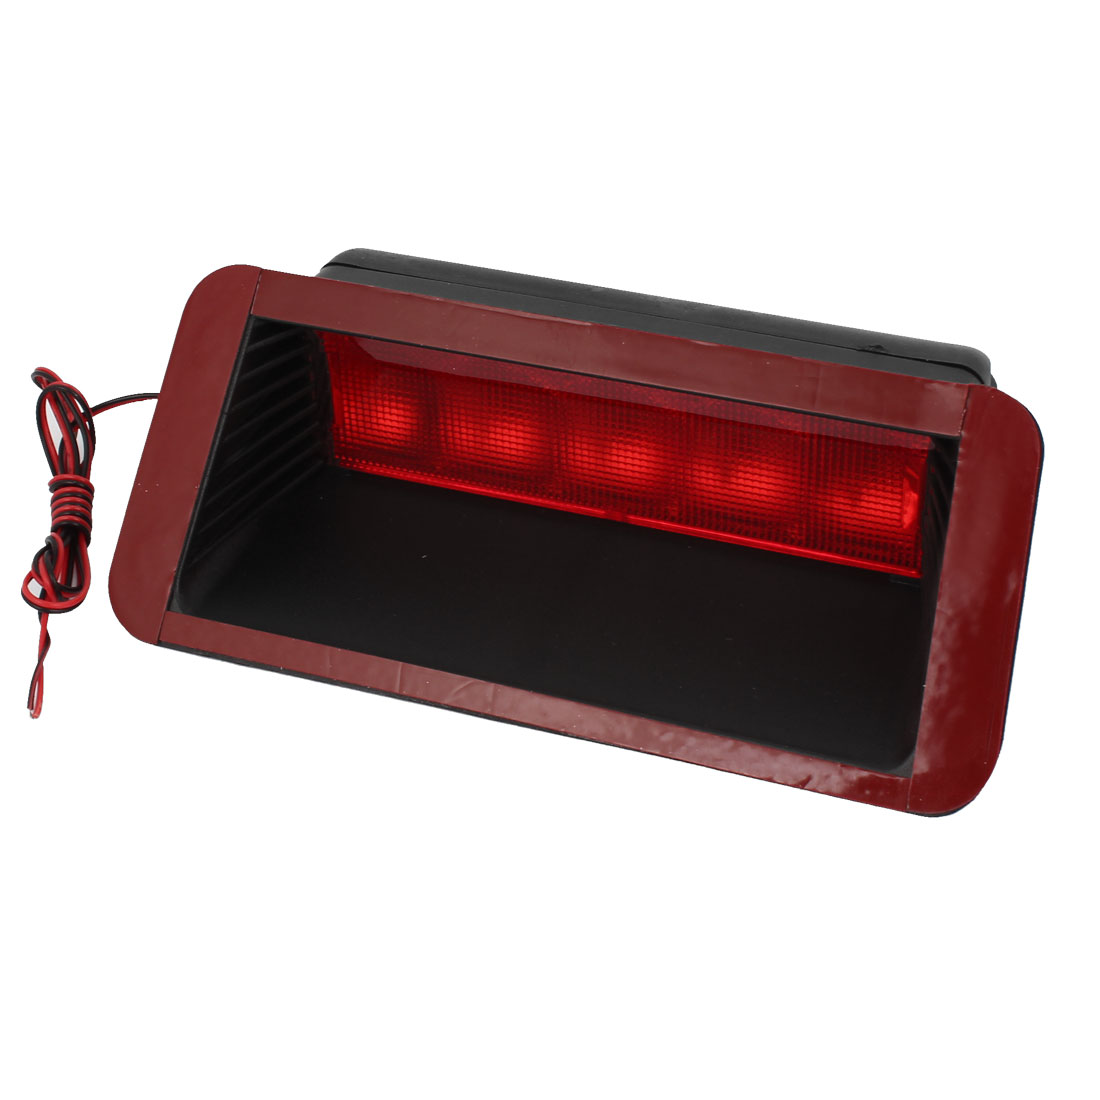 12V Black Plastic Casing Rear Red 5 LED Brake Light Reverse Lamp for Vehicle Car